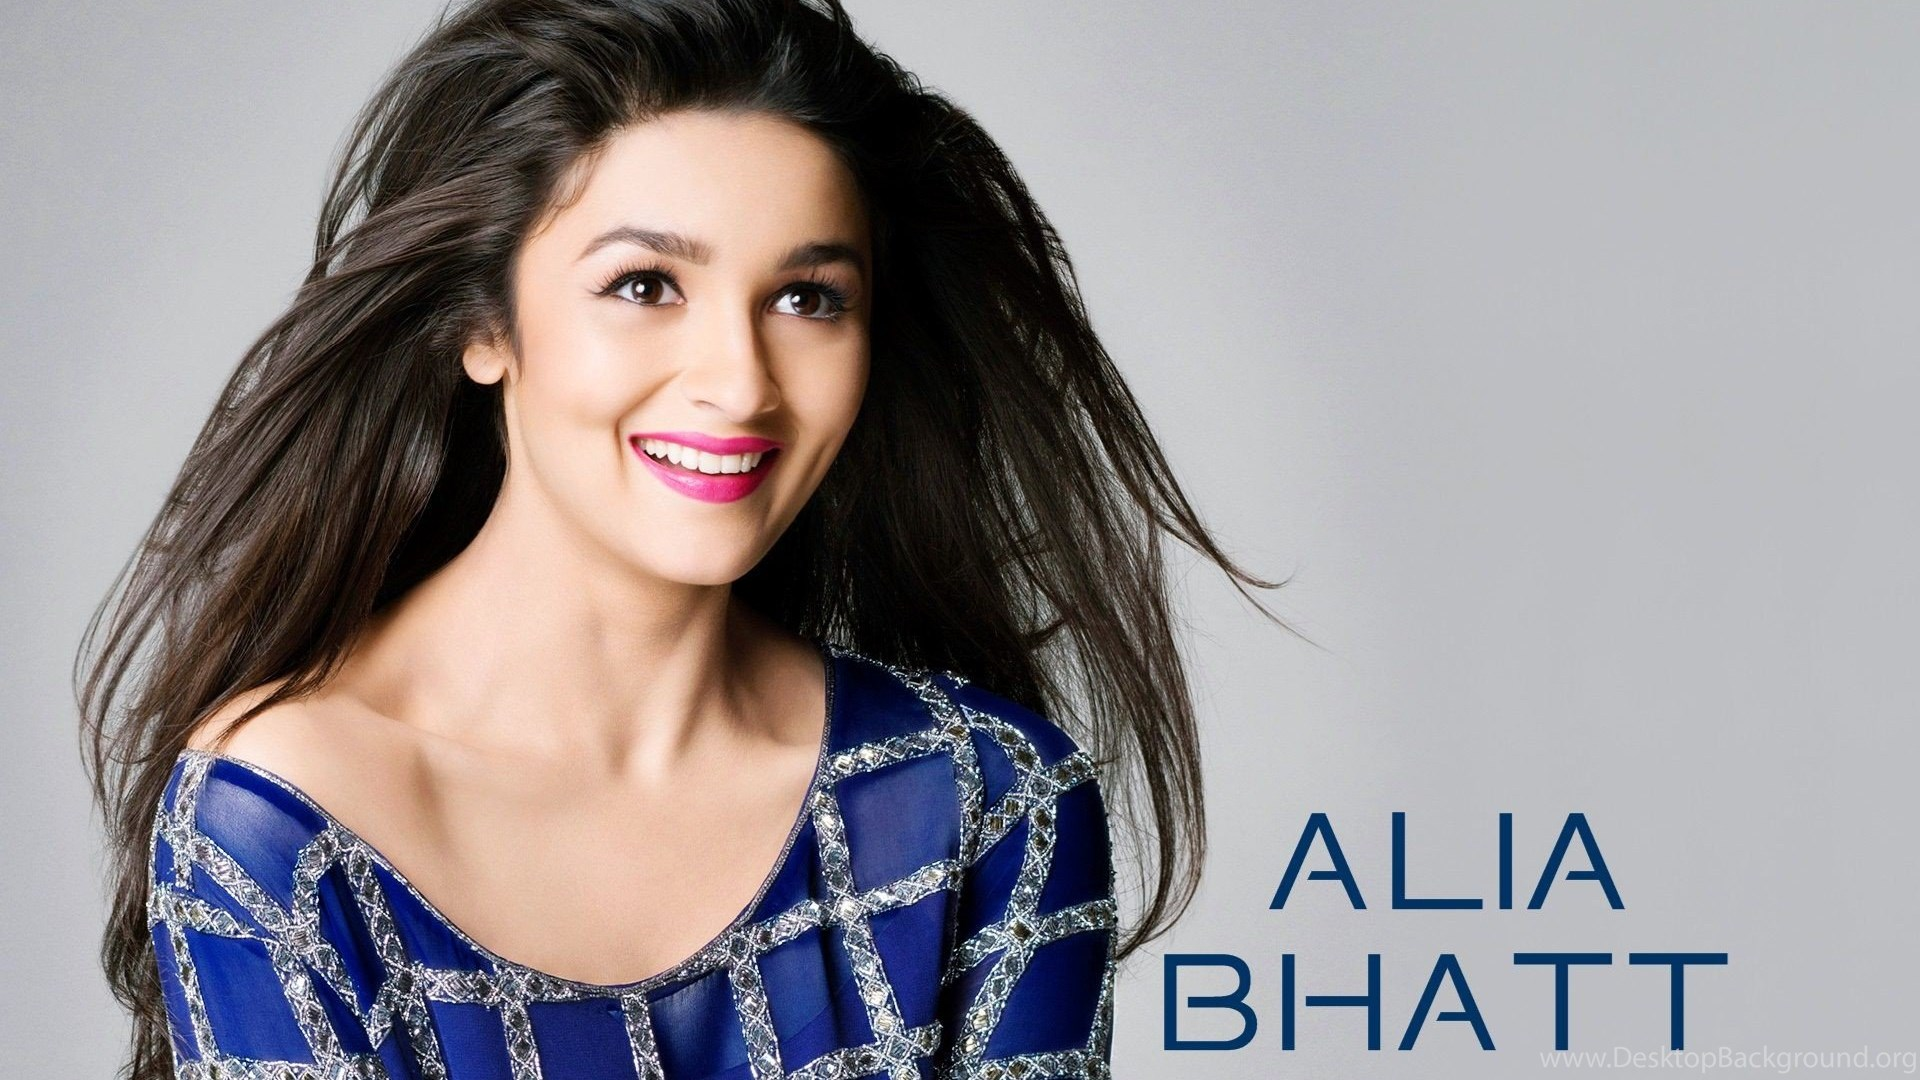 alia bhatt wallpapers download desktop background